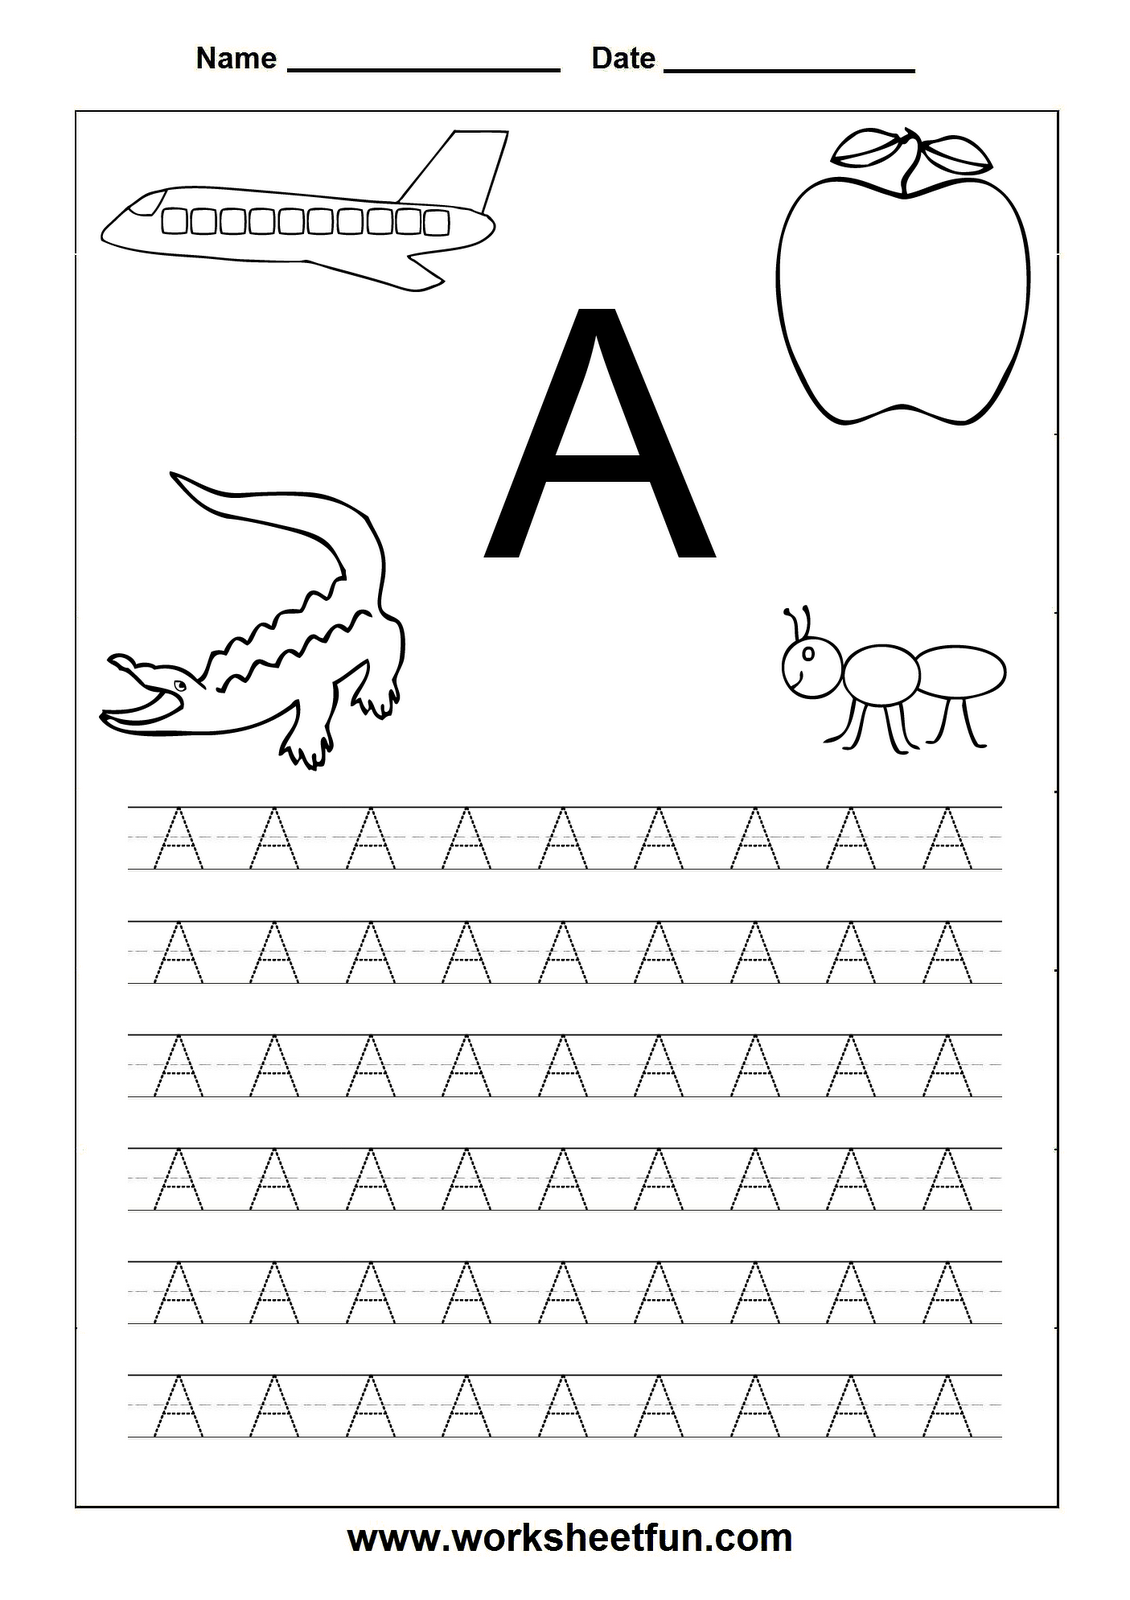 Worksheet Free Alphabet Printables For Kindergarten free tracing alphabet printables for preschoolers worksheet 1000 images about stuff to on pinterest letter worksheets kindergarten